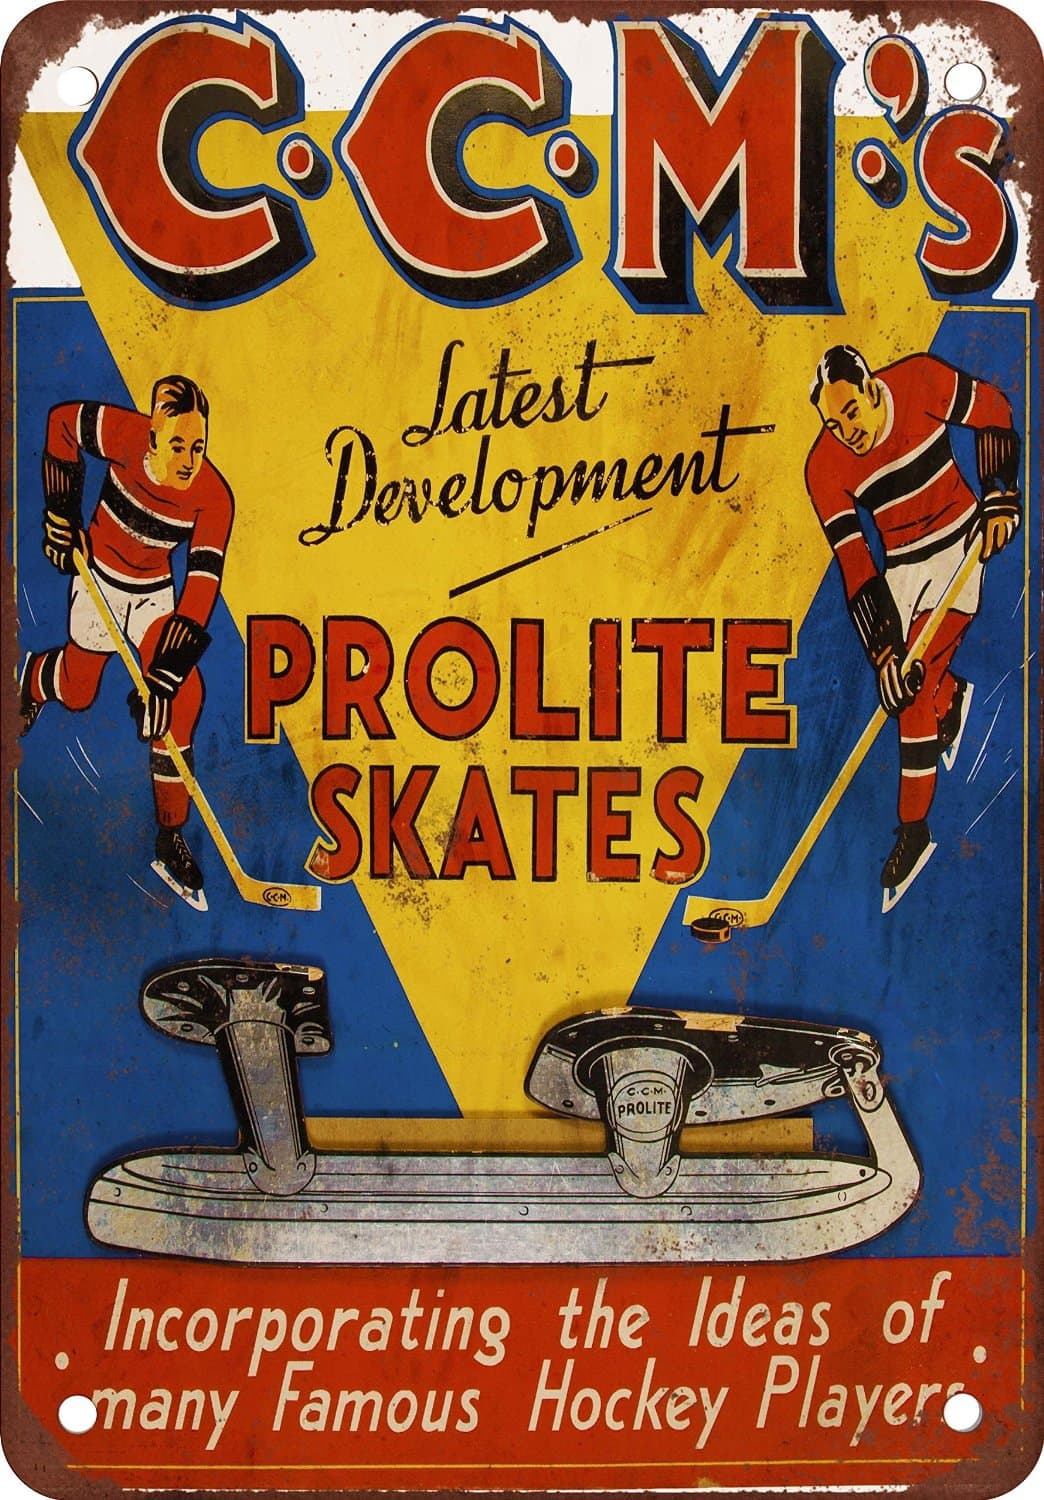 Vintage Metal Signs to Make You Feel Nostalgic- CCM proline skates